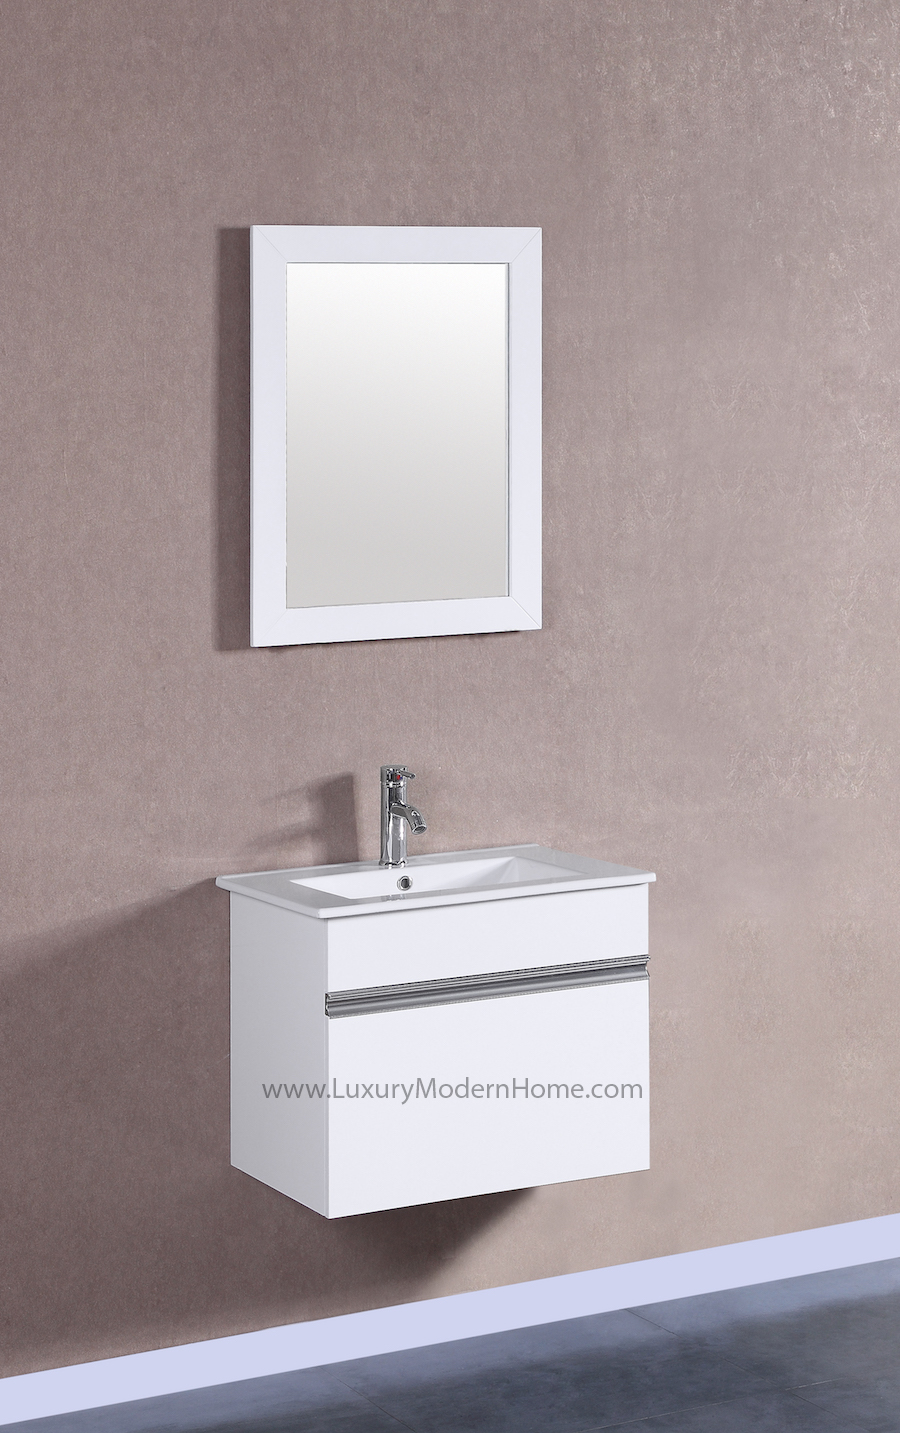 PETRONIUS 24 Small White Vanity Sink